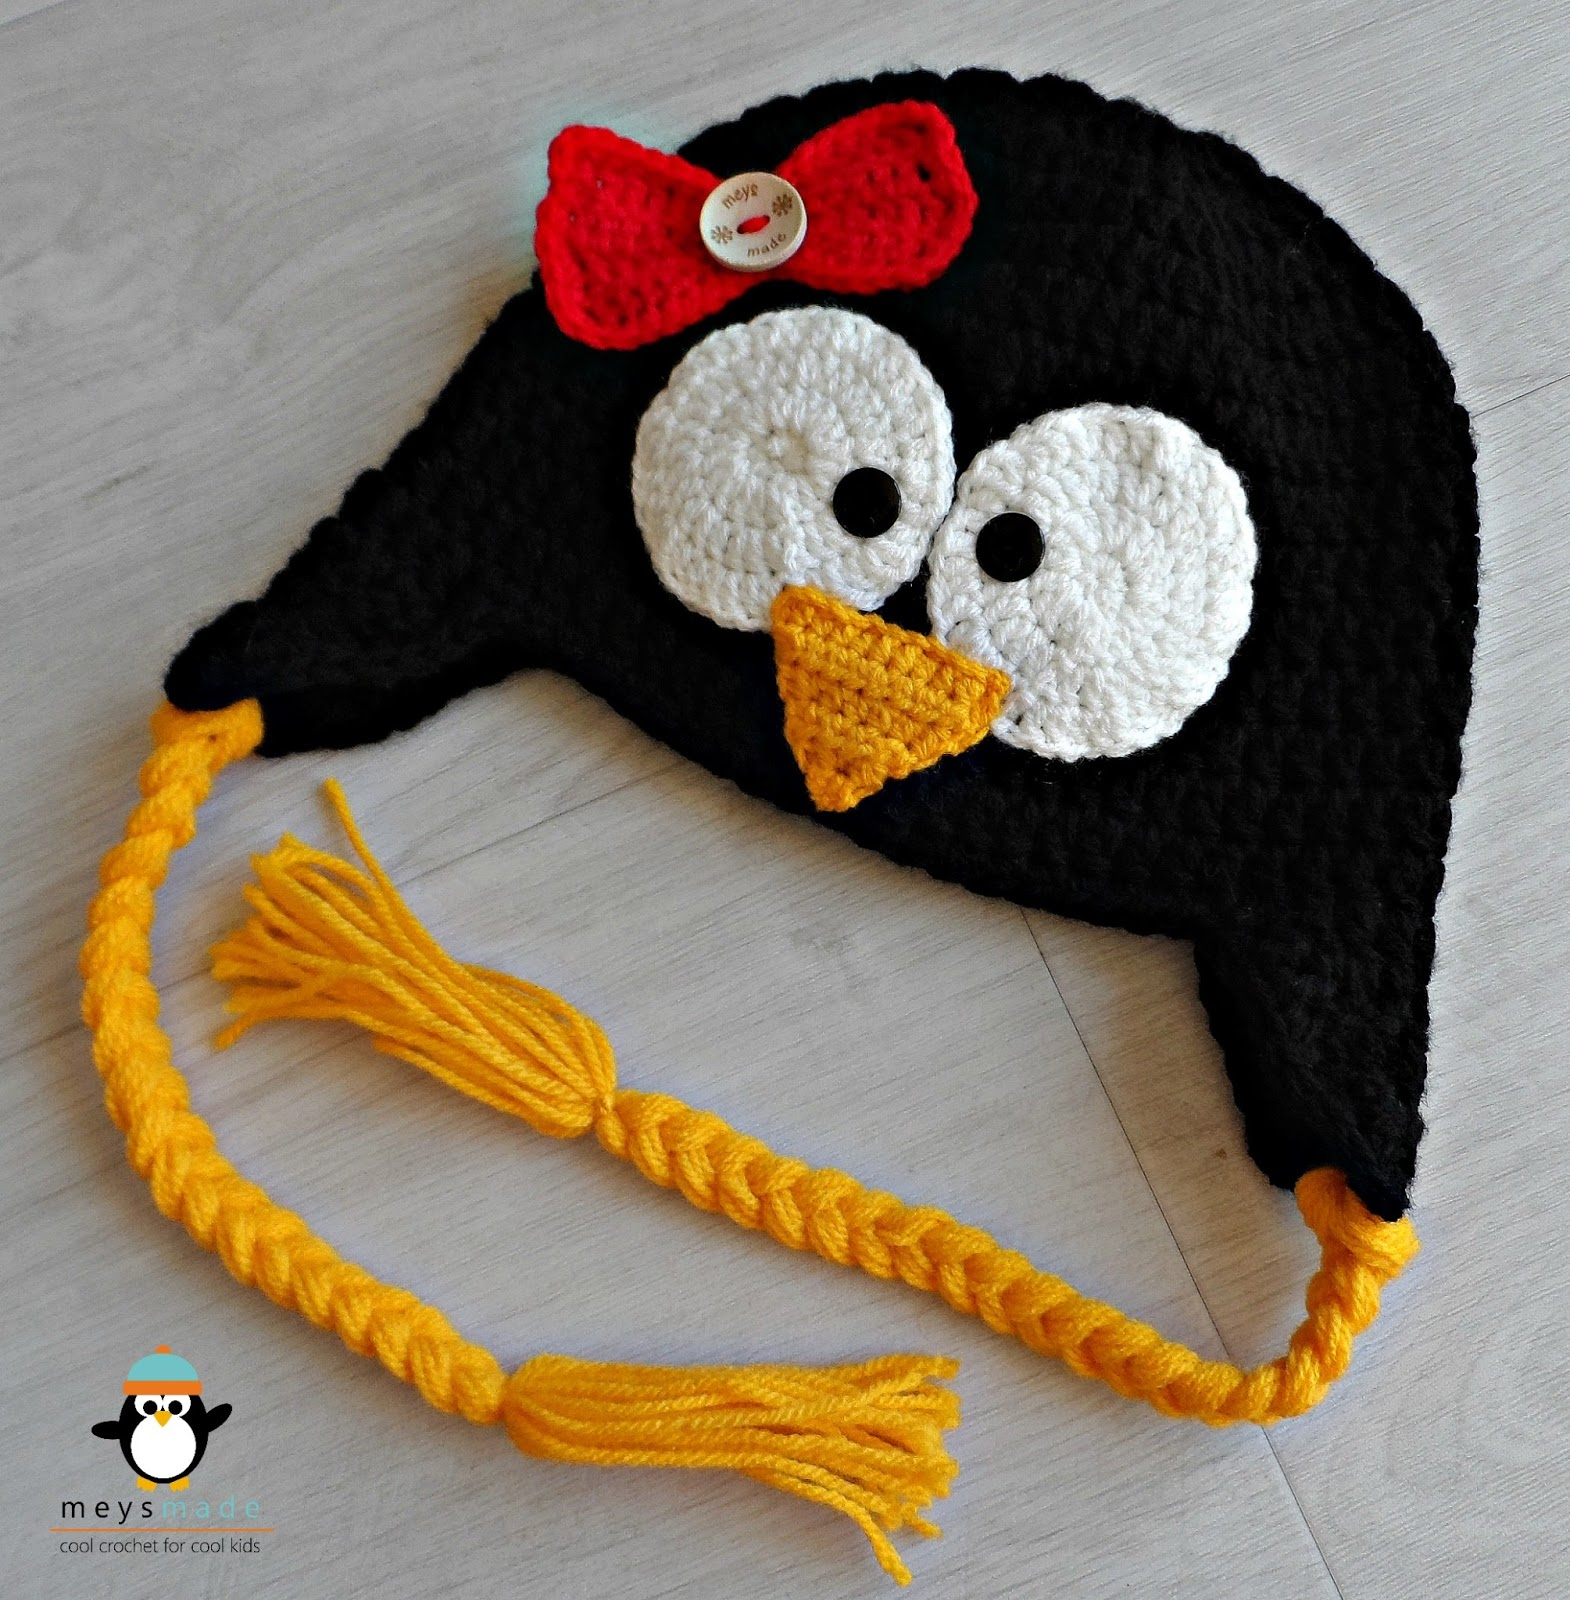 meys made cool crochet for cool win a free penguin